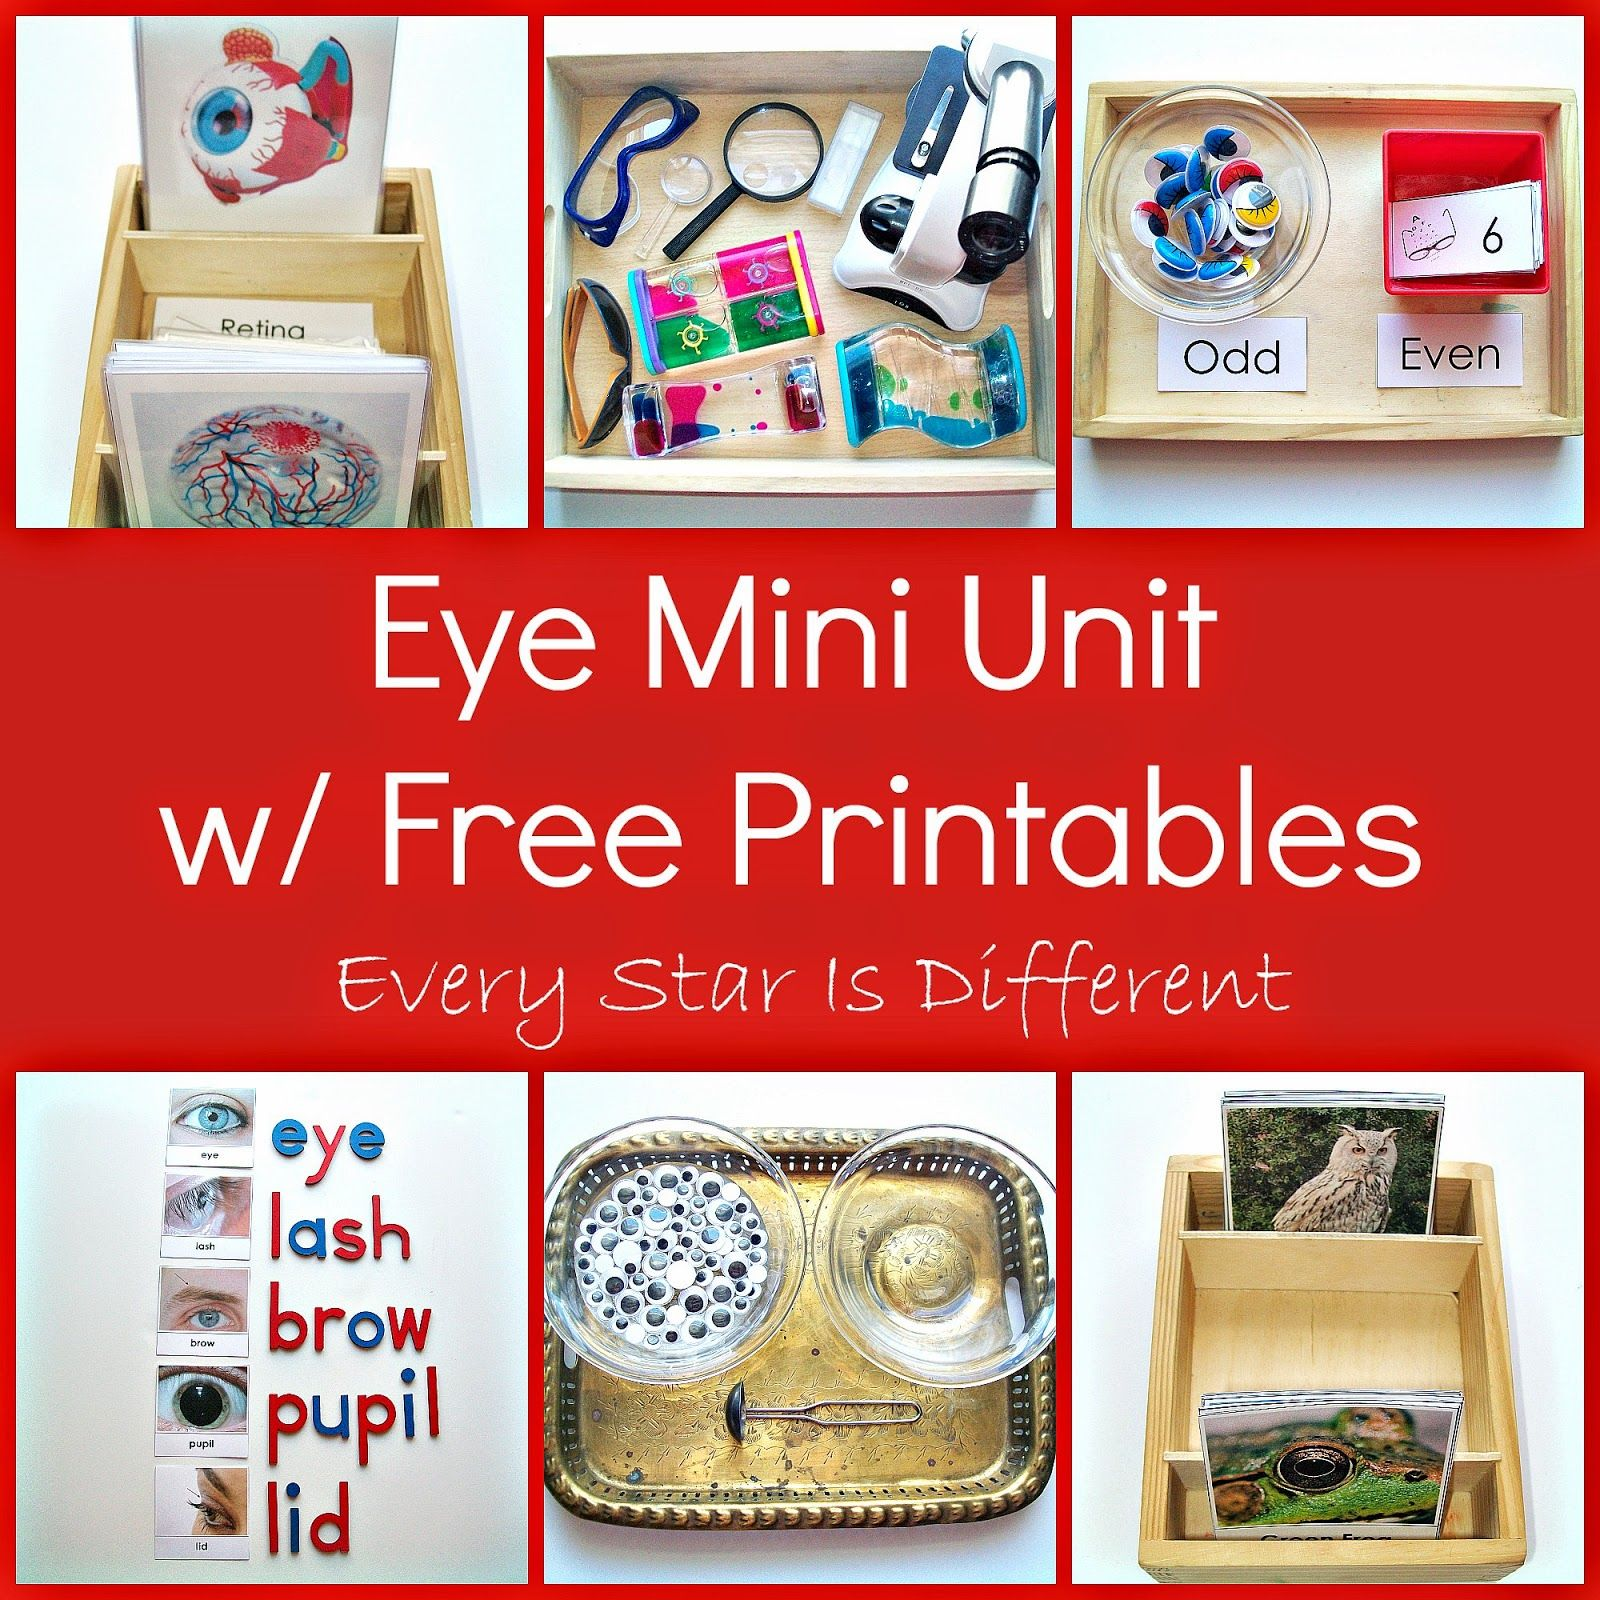 Every Star Is Different: Eye Mini Unit w/ Free Printables